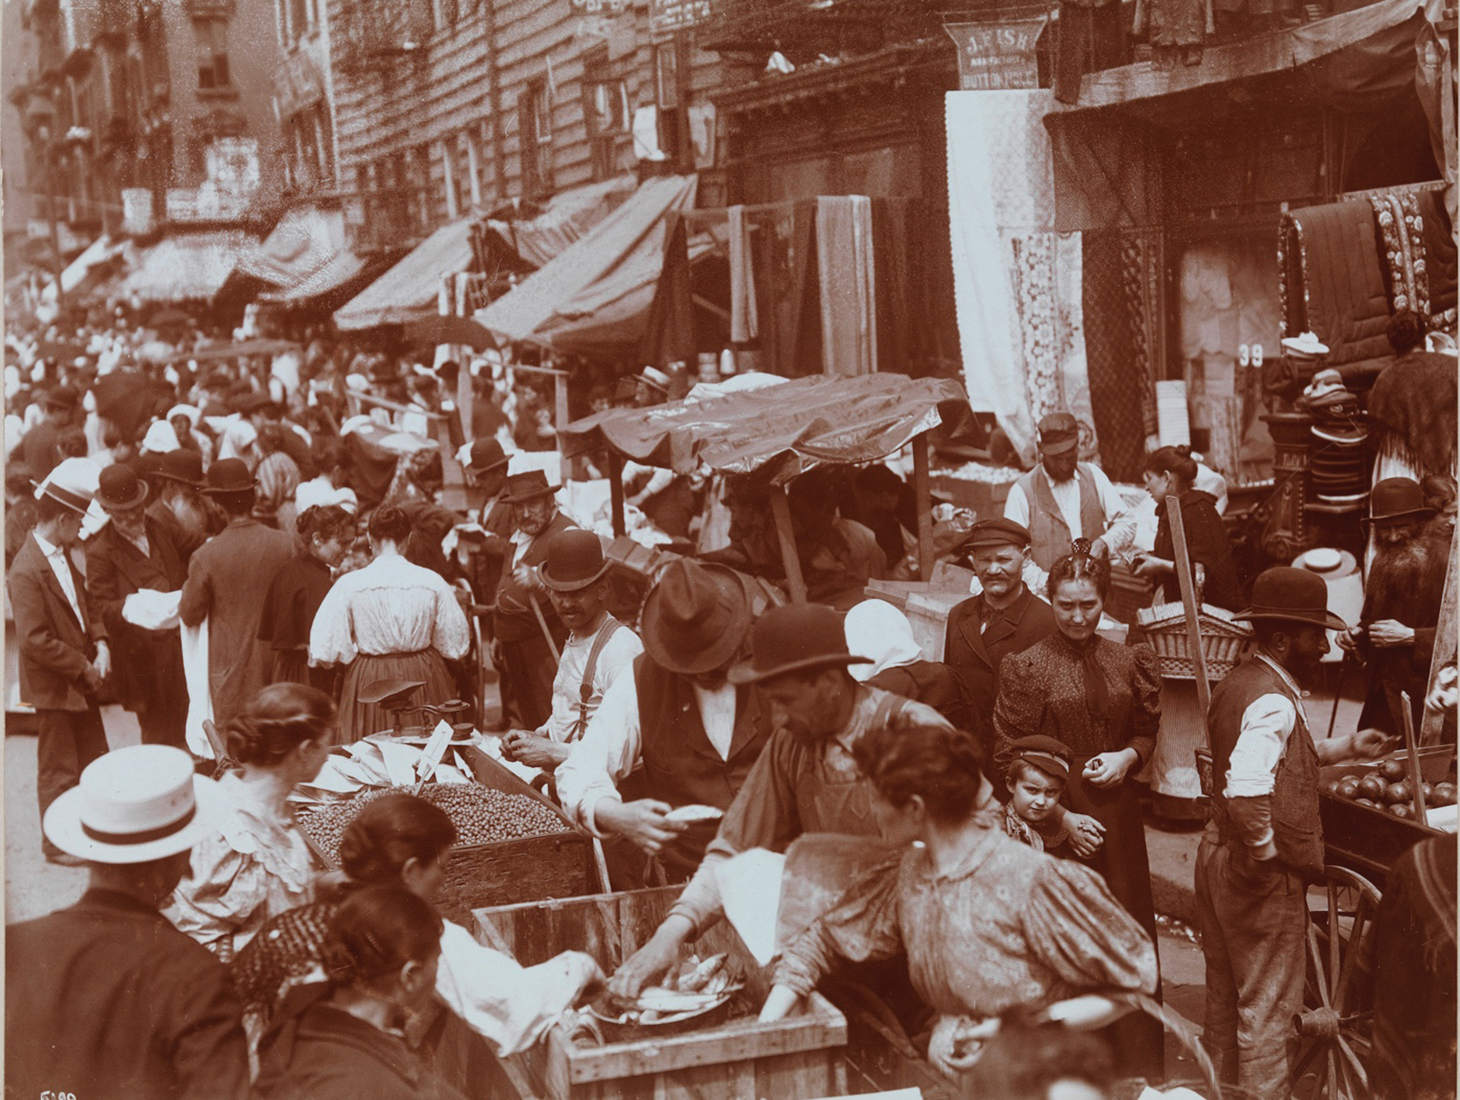 Byron Company. [Street Vendors, 1898. Hester St.] Museum of the City of New York. 93.1.1.18132.